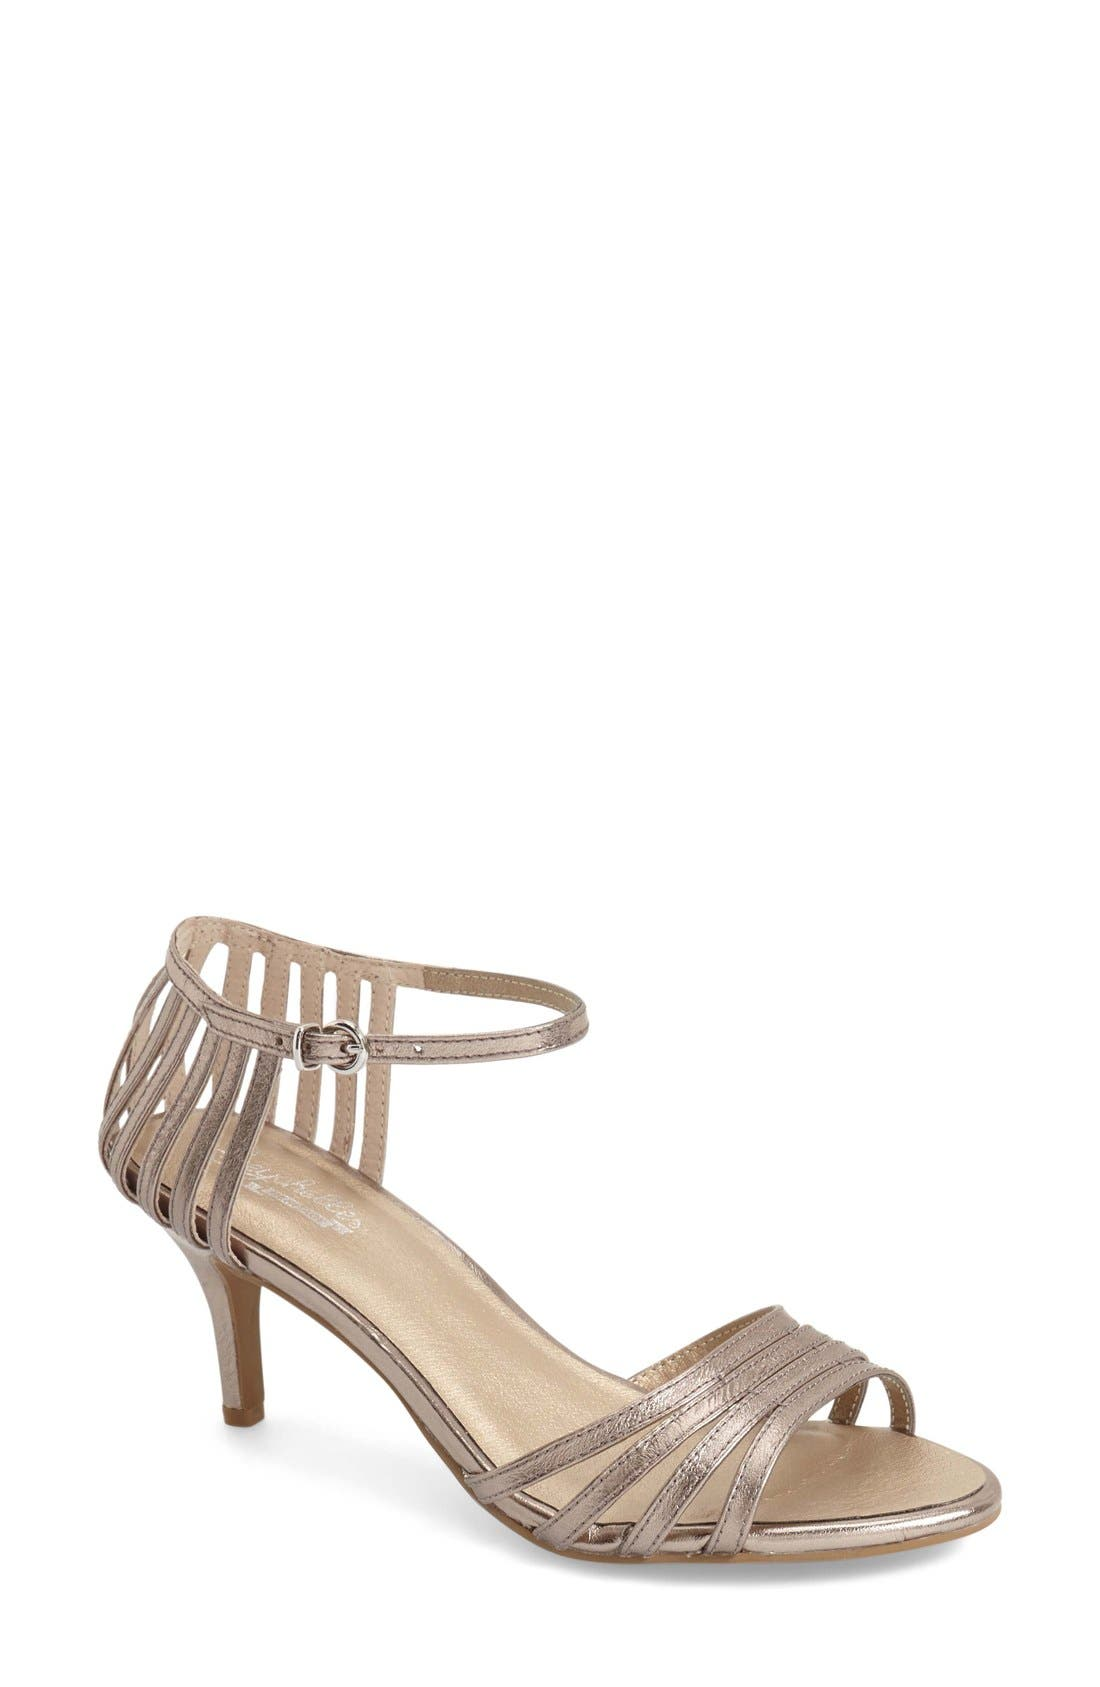 'Song and Dance' Ankle Strap Pump,                             Main thumbnail 1, color,                             Pewter Leather